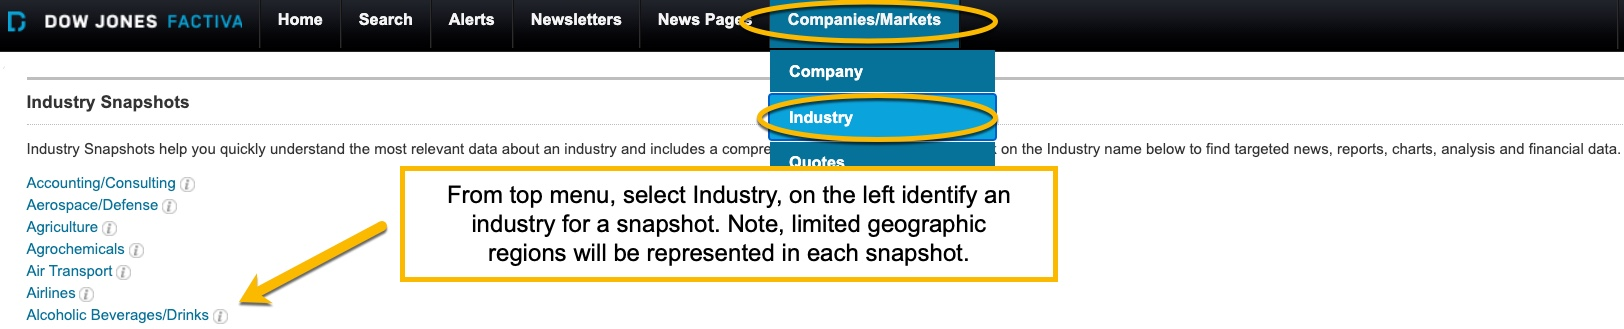 Image of Factiva top search menu circle on company